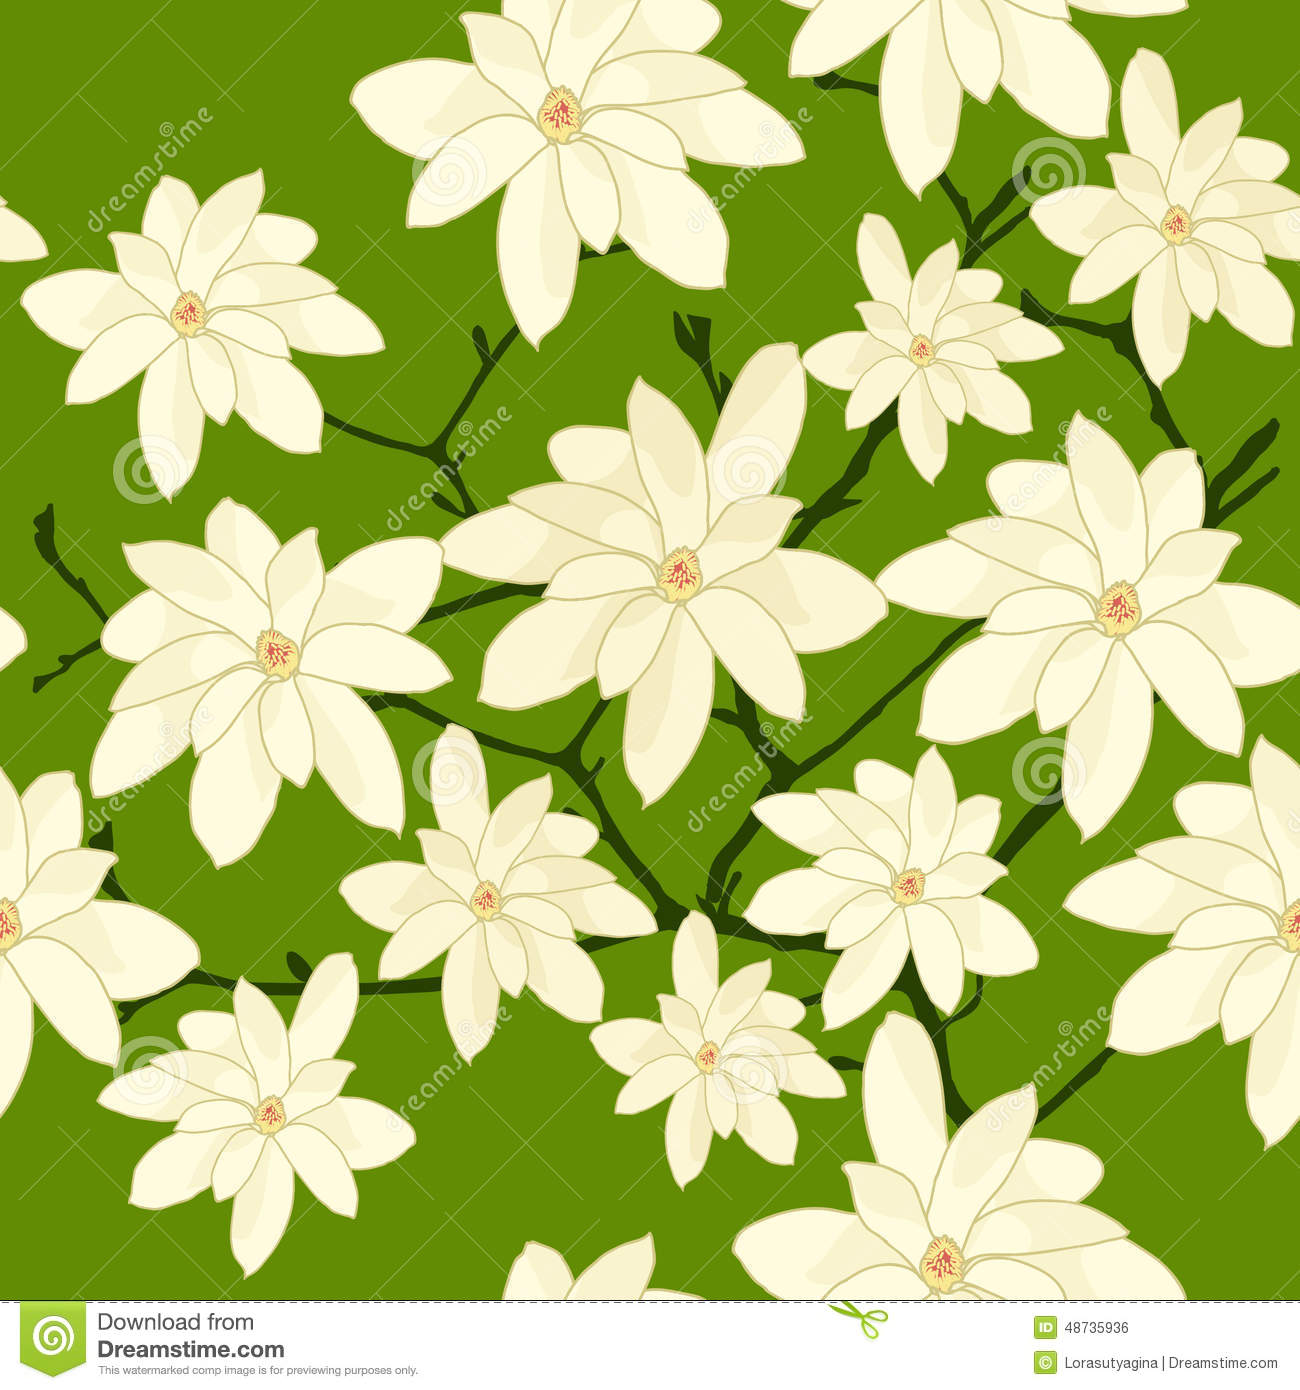 Seamless Pattern With White Magnolia Branch On A Green Background Plain Flowers For Wallpaper Or Decoration